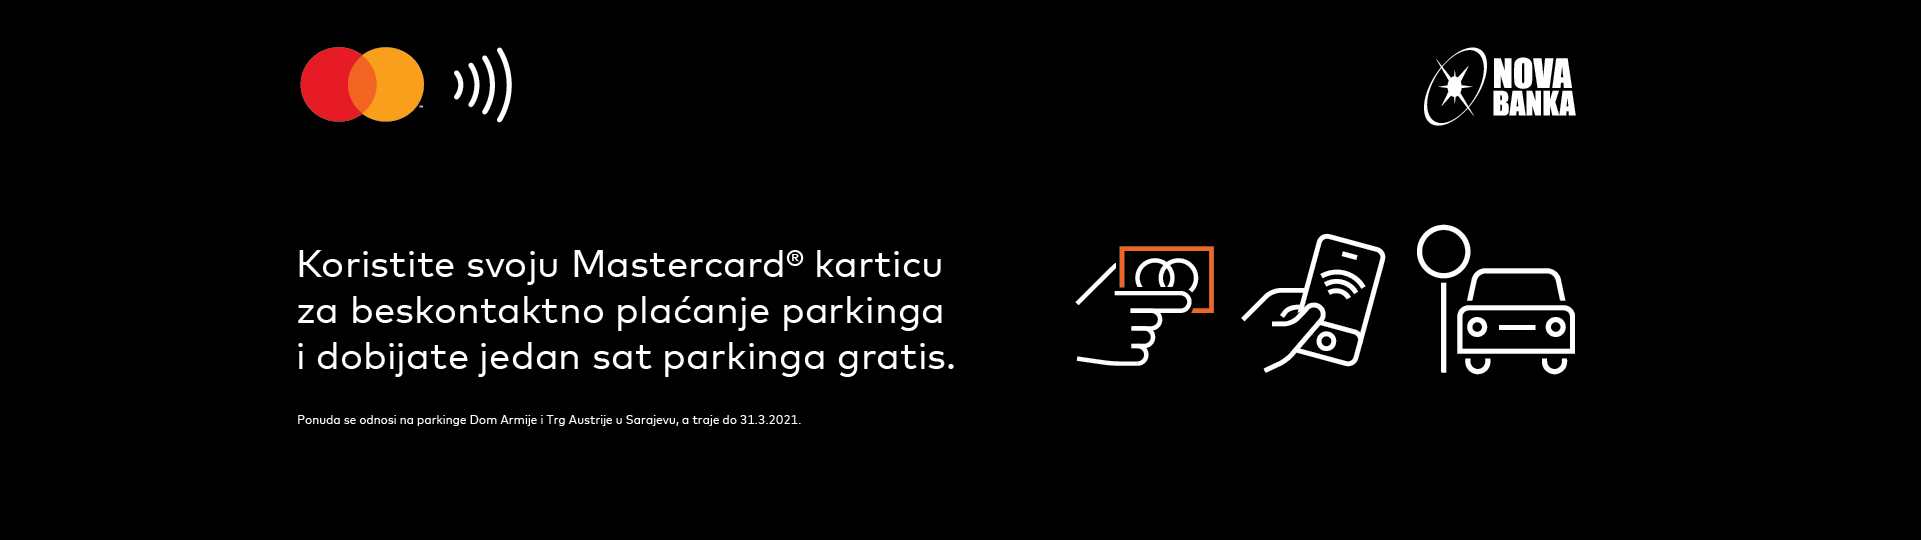 MC-parking-Nova-Banka-07